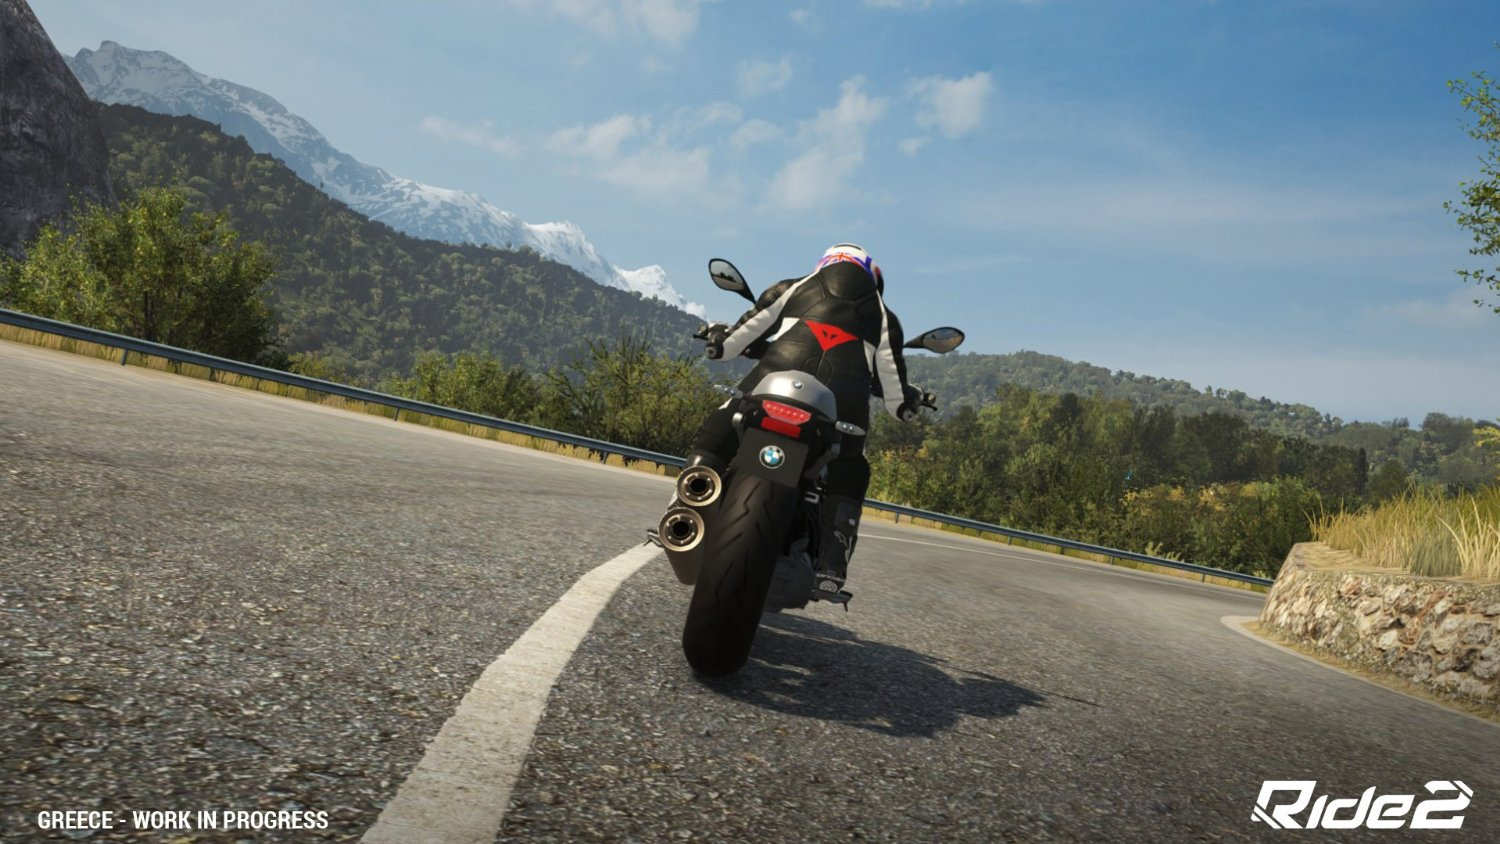 Ride 2 Ps4 Playstation 4 News Reviews Trailer